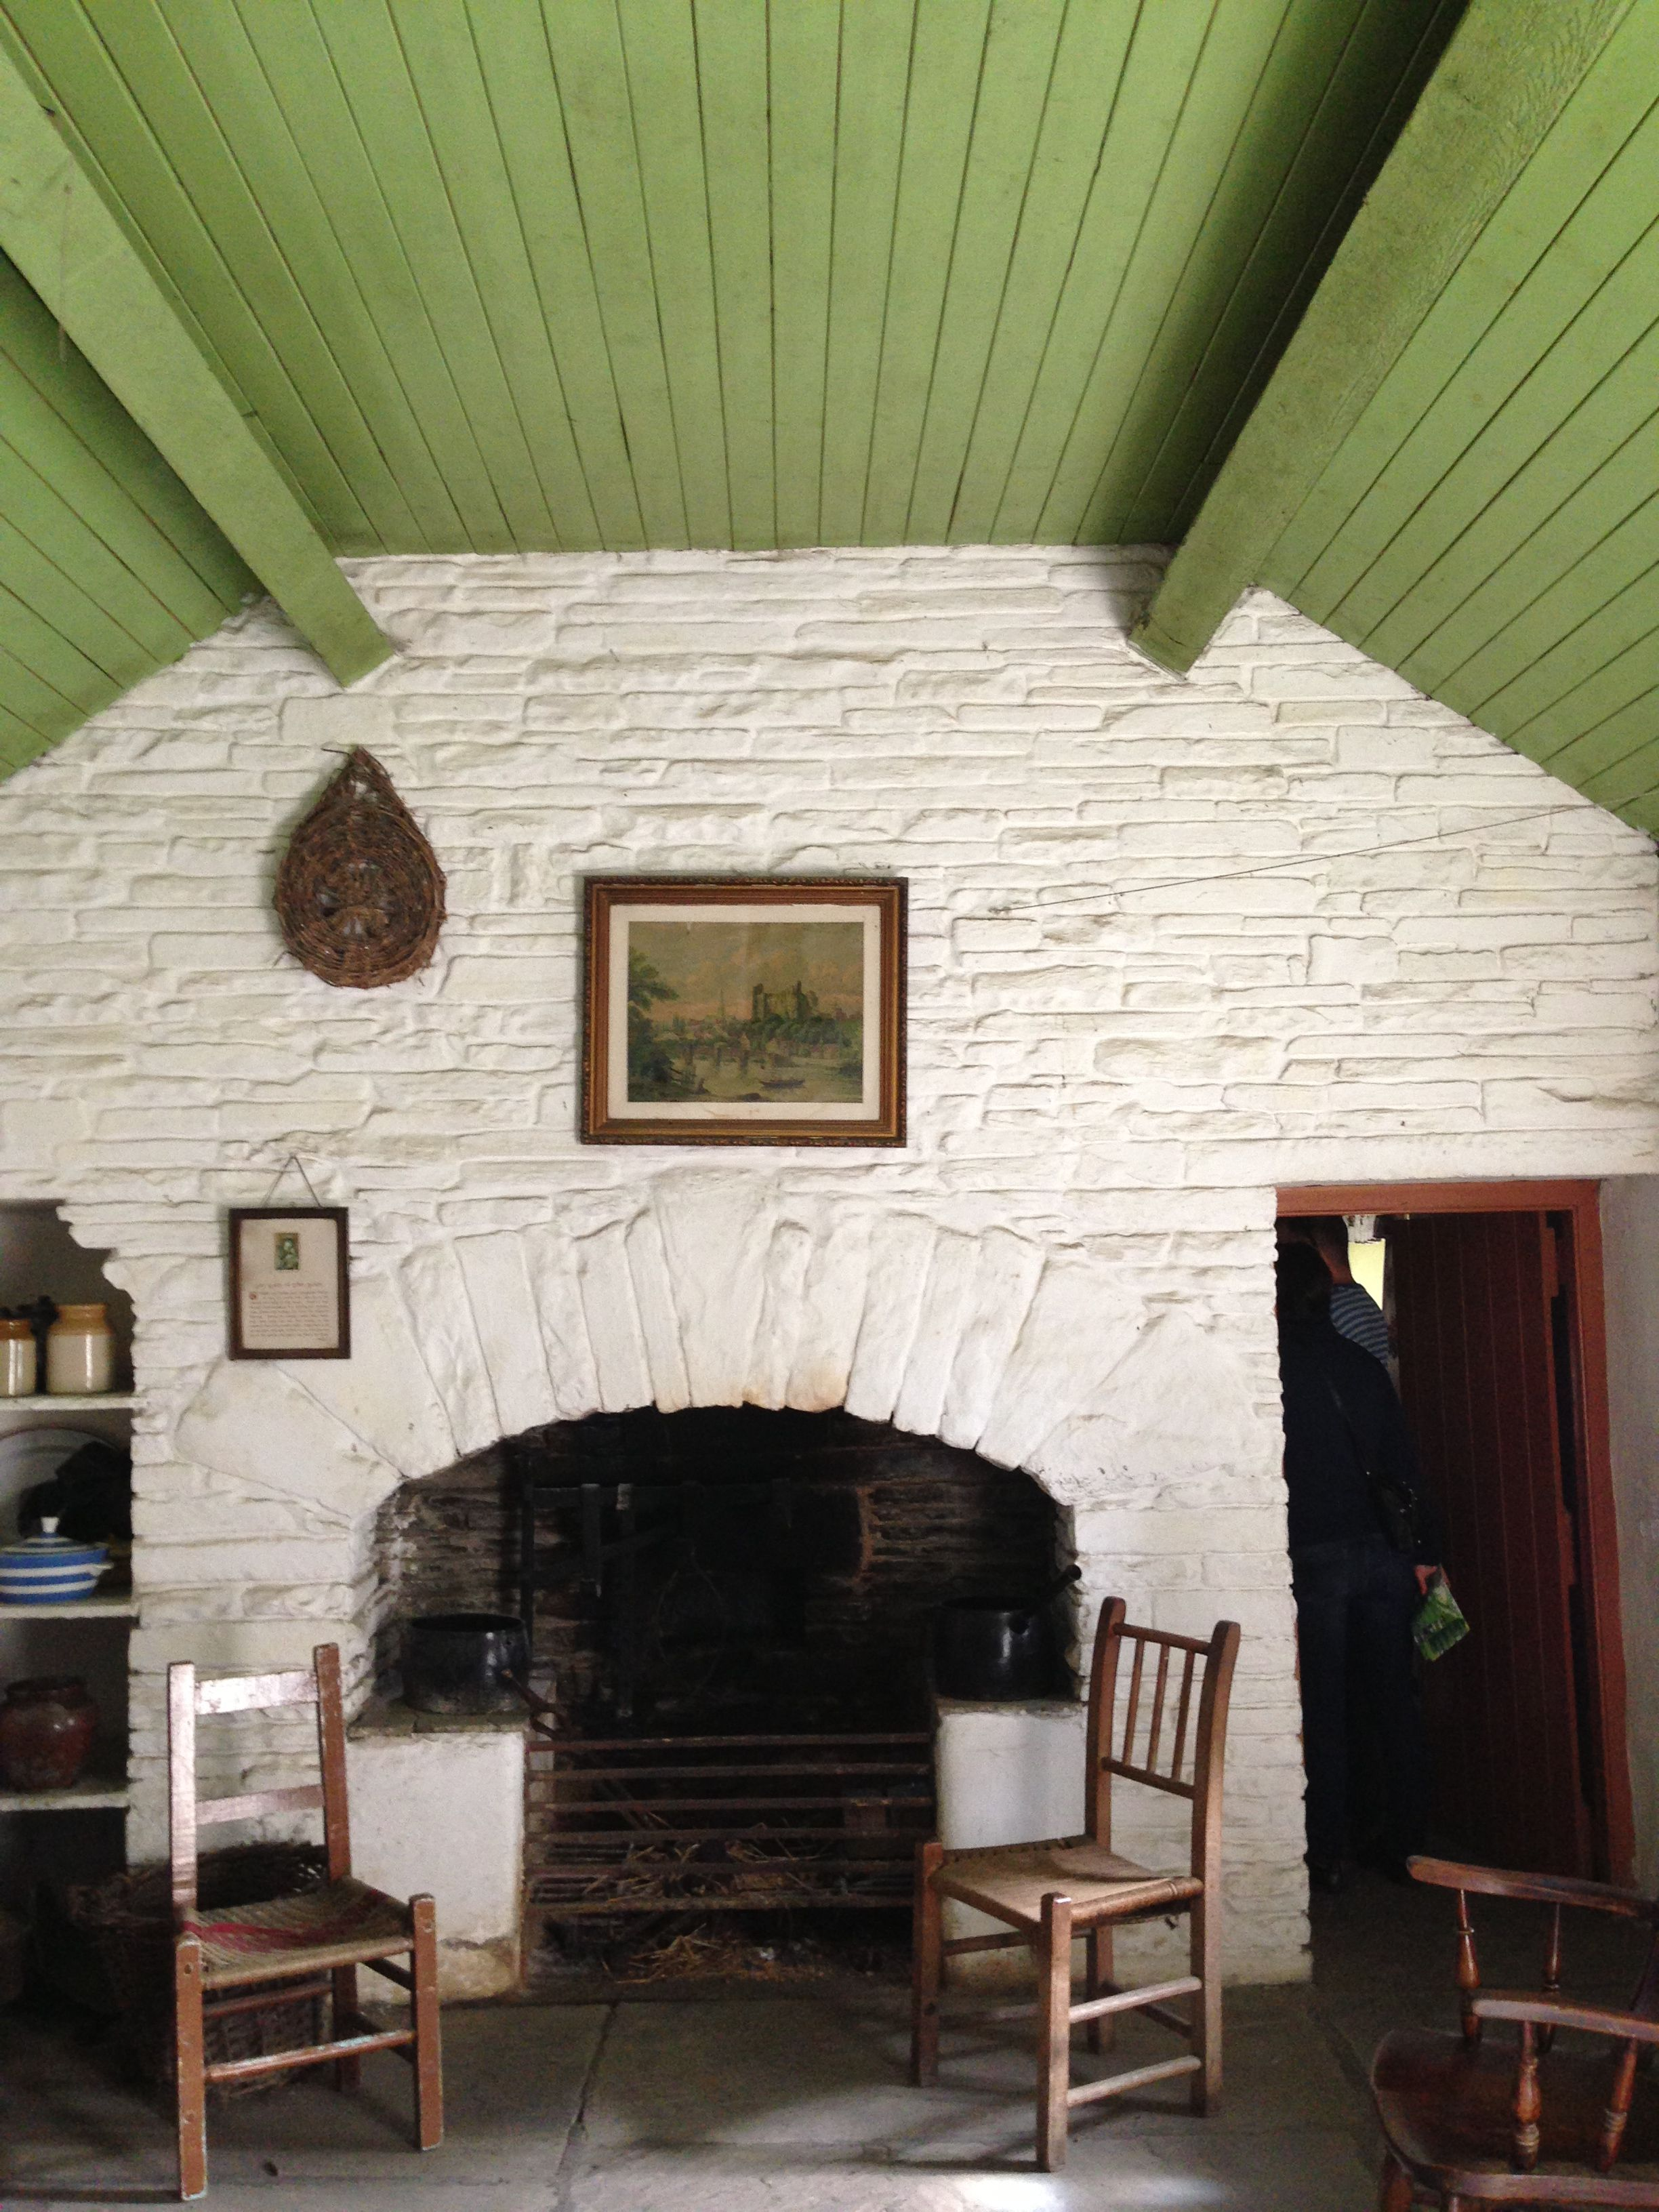 A Traditional Irish Cottage Hearth By Unknown Author